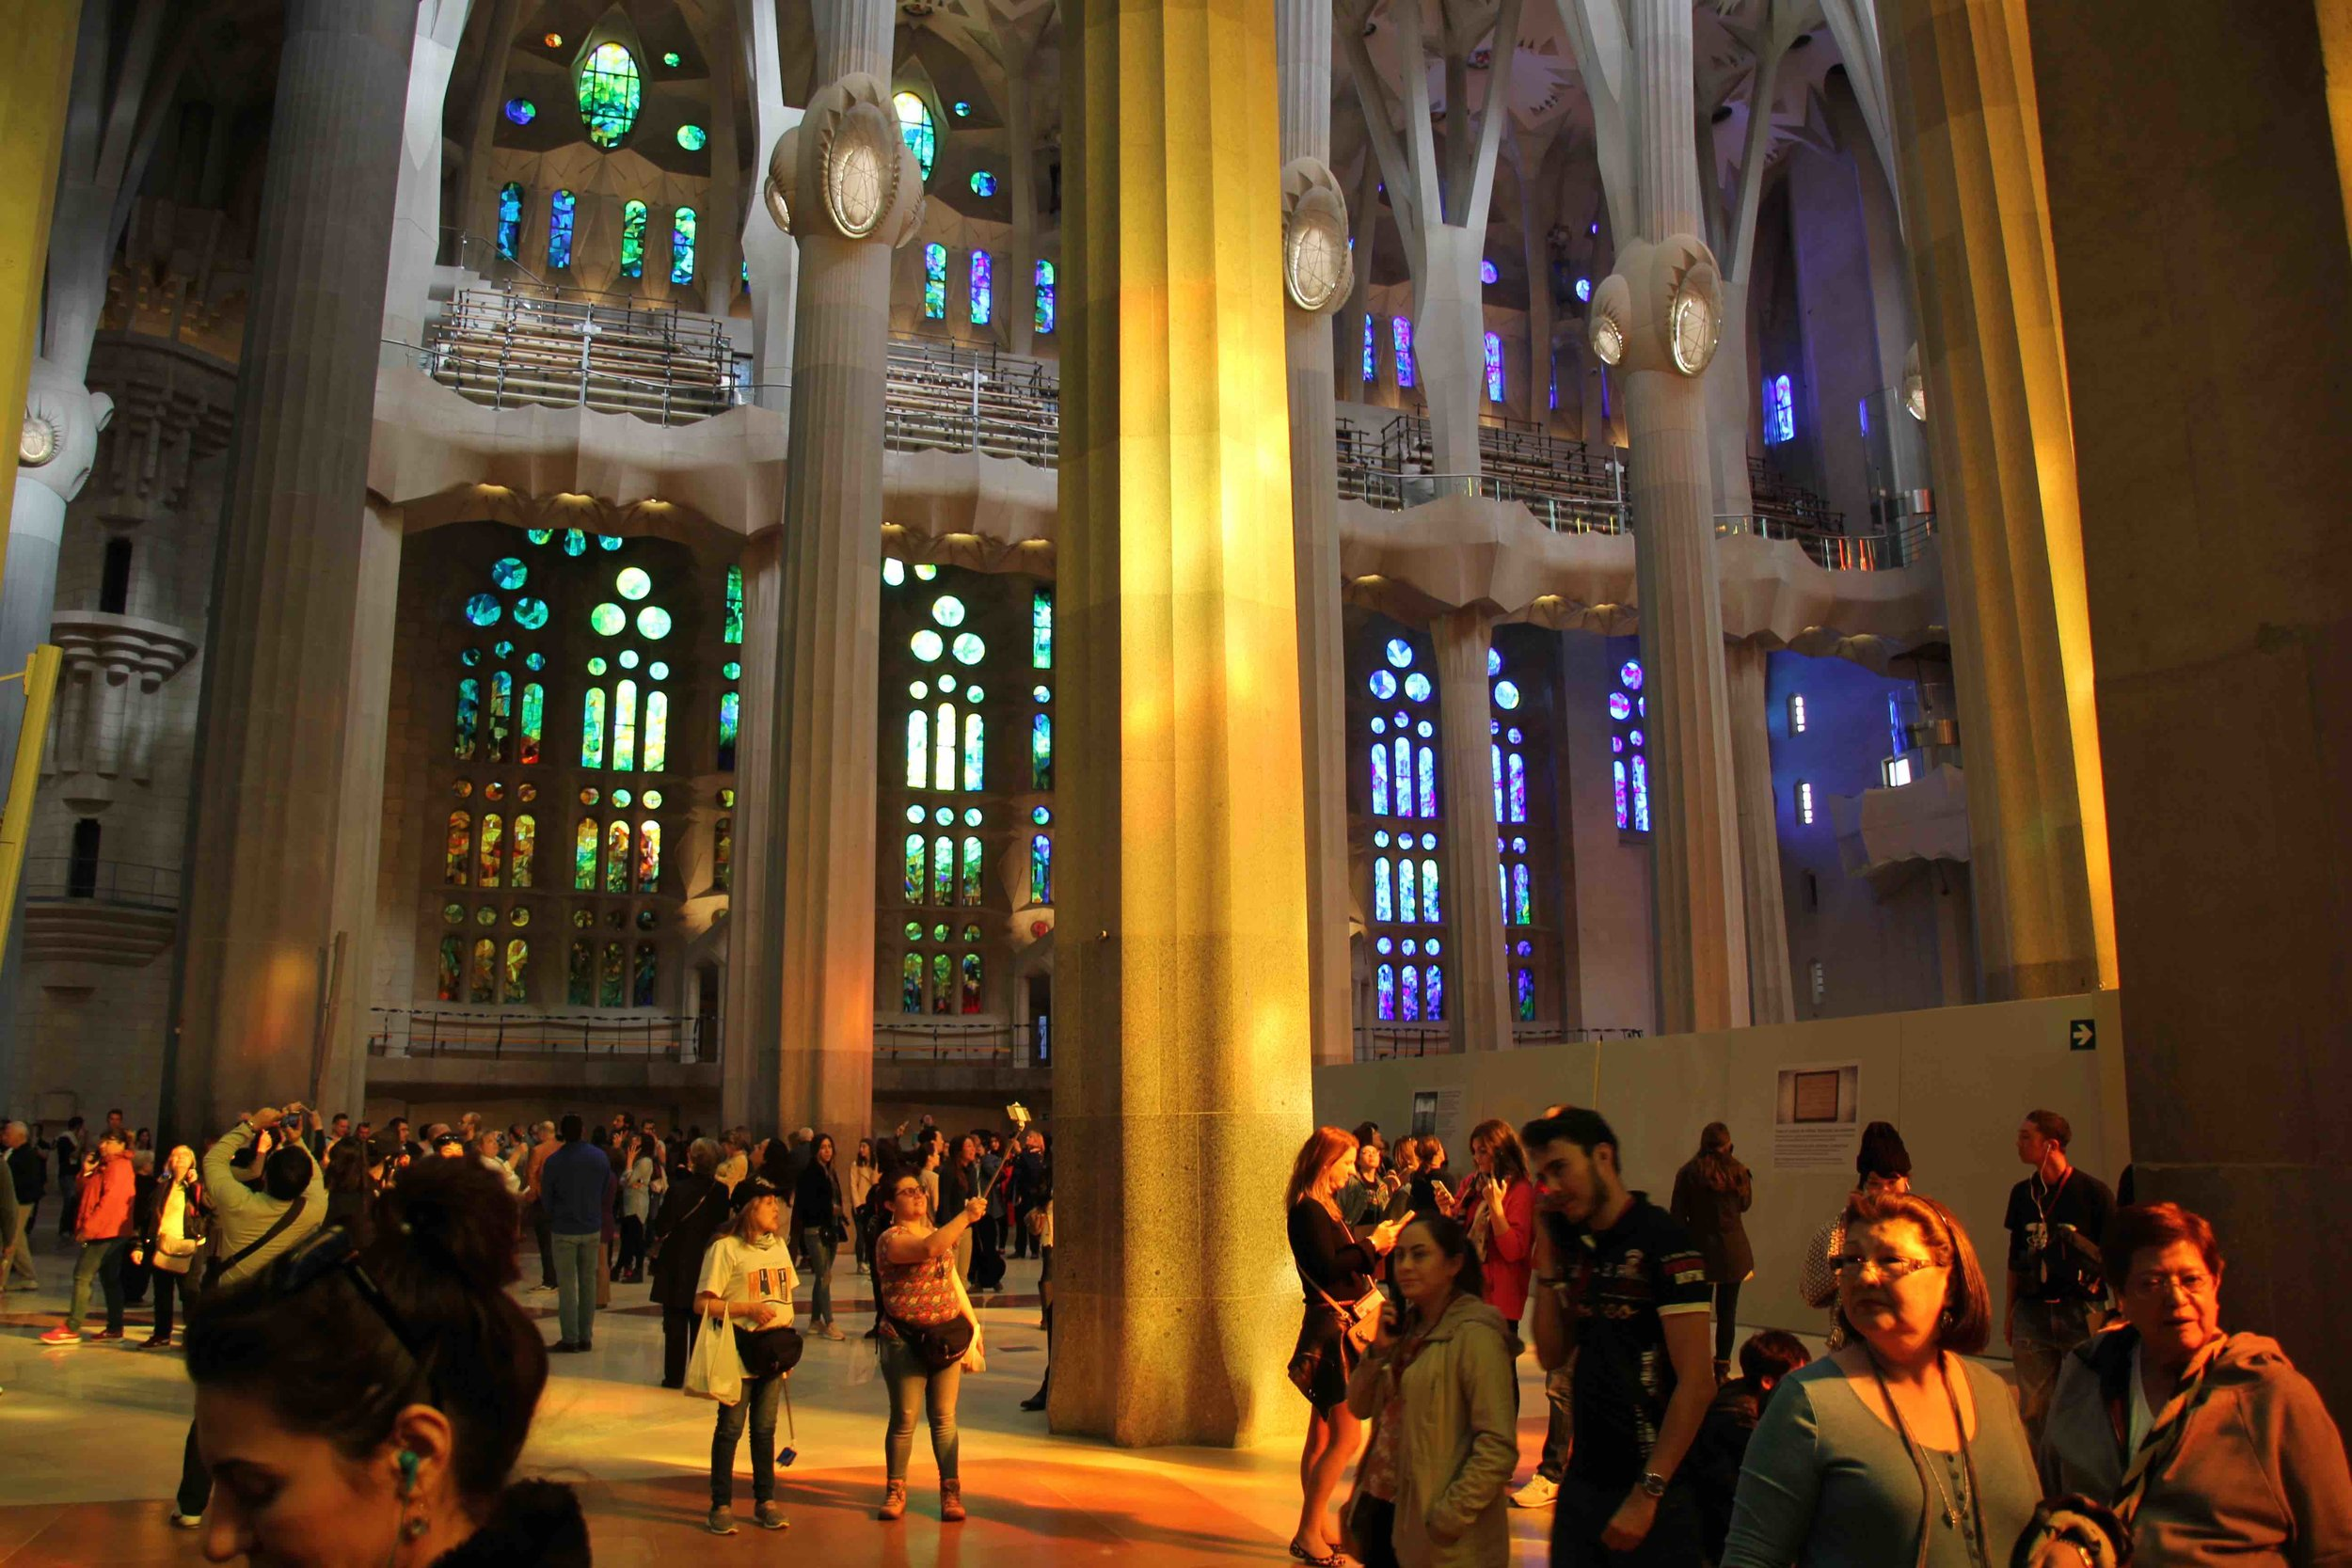 The interior of La Sagrada Familia. Note the blue and green light emanating from the far windows on the nativity side, and the reflections of red, orange and yellow light on the pillars from the windows on the passion side.